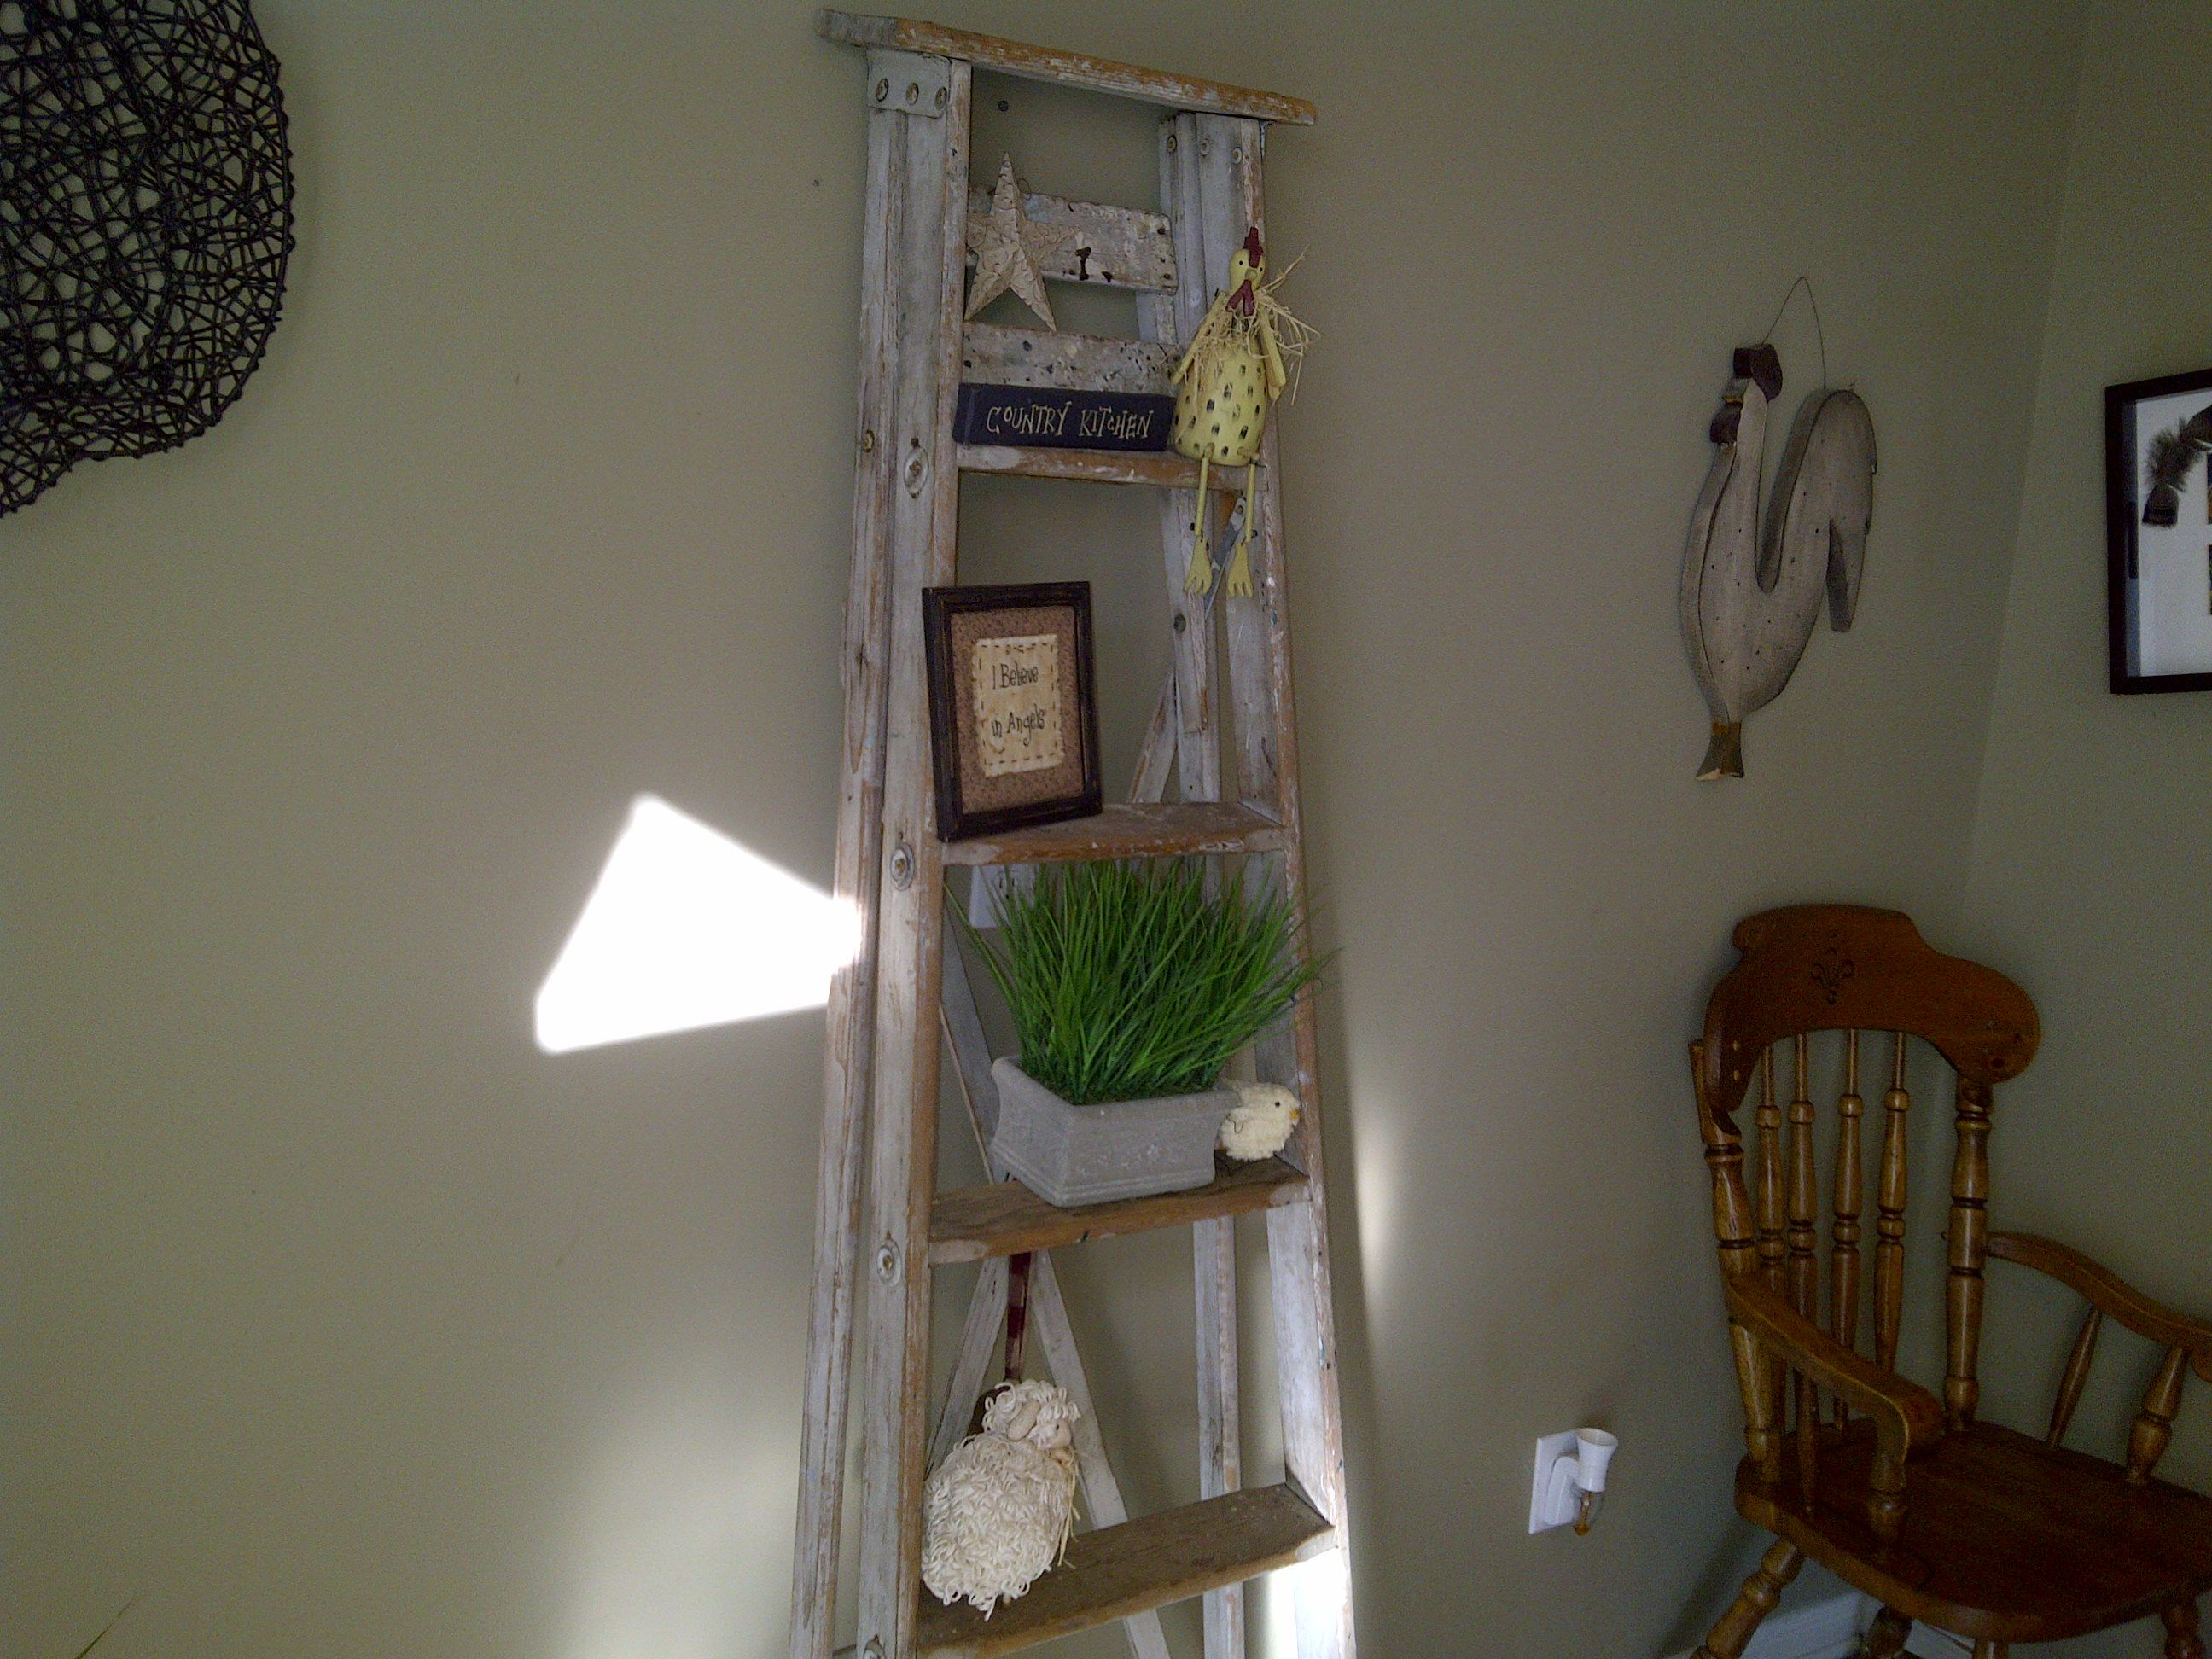 Kitchen Decor Ladder Refurbished A Wood Ladder And Now It 39s Part Of My Kitchen